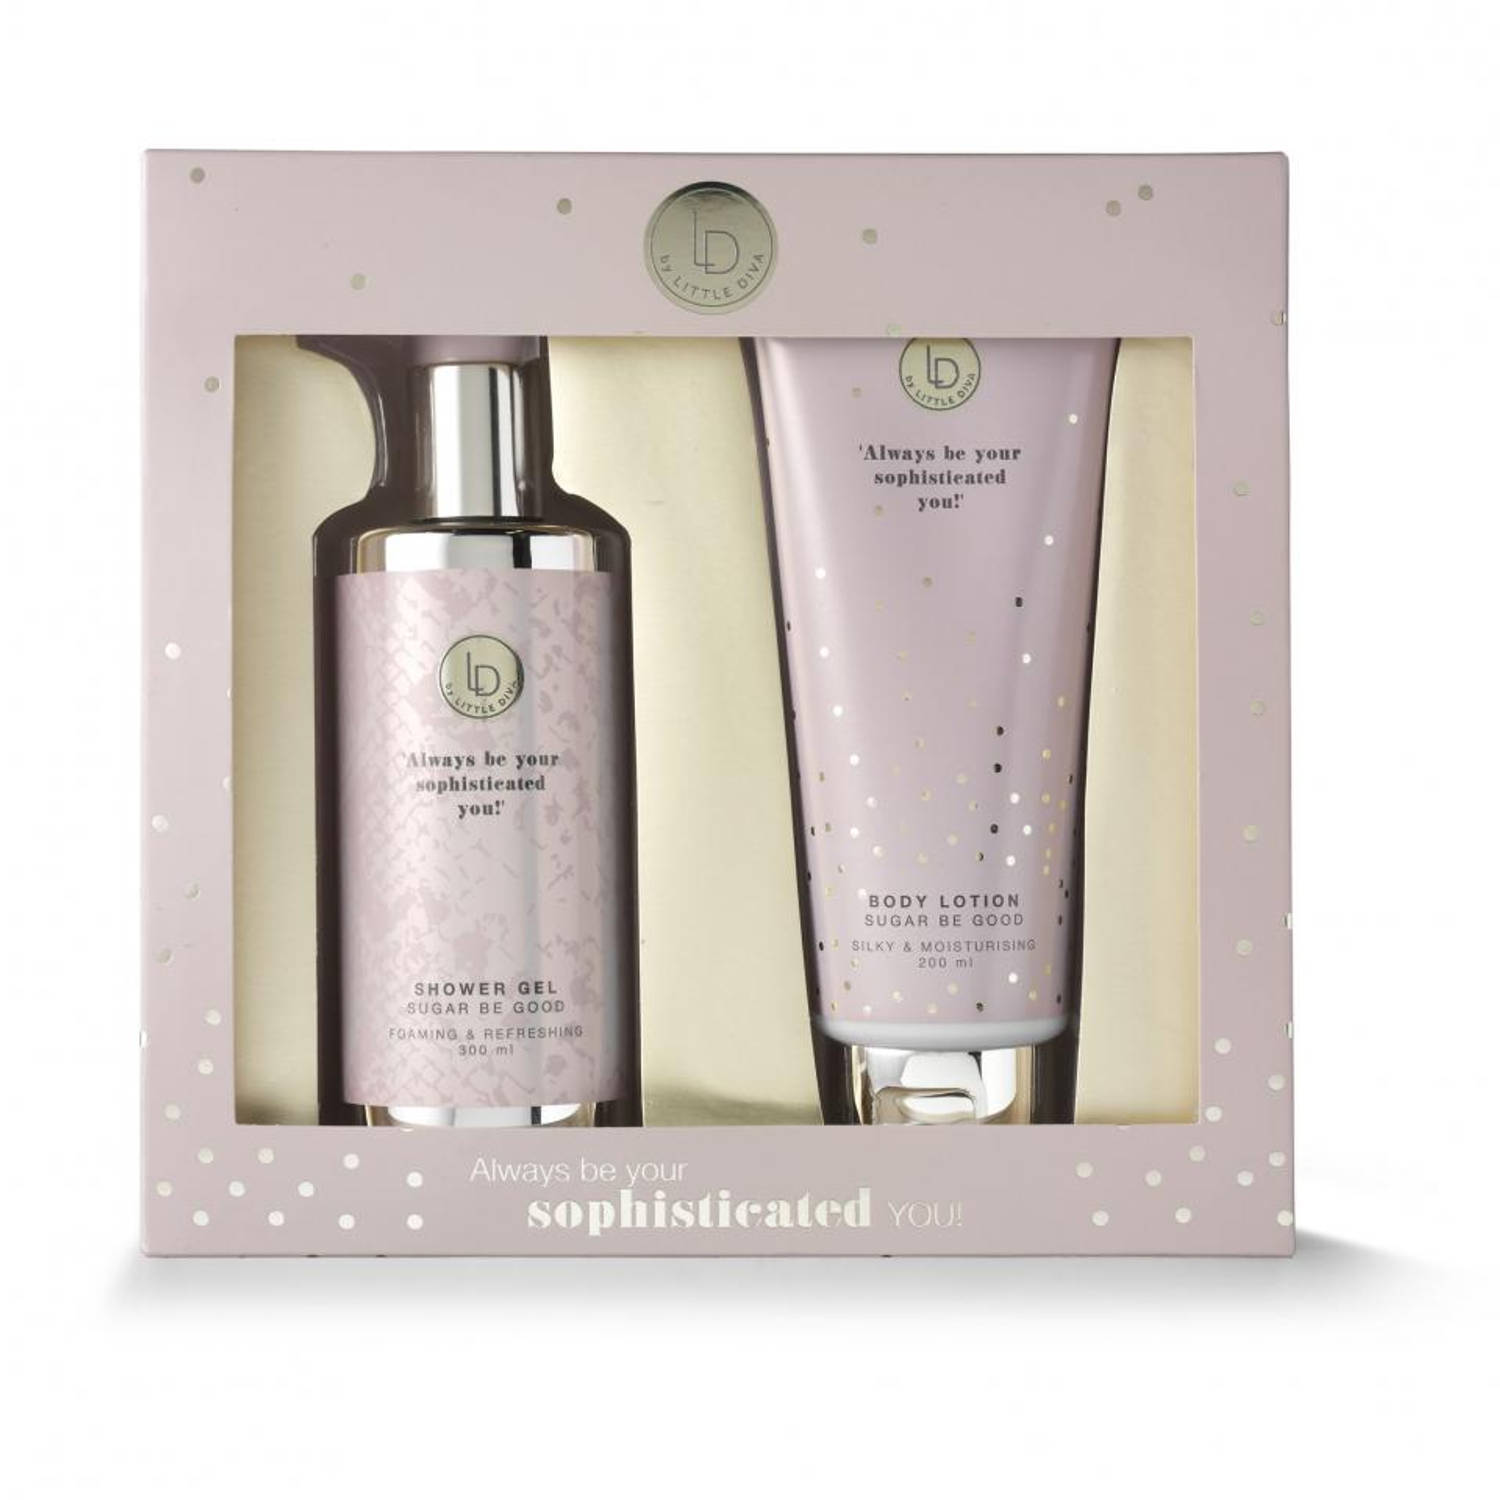 Little Diva bodylotion en showergel giftset - sugar be good